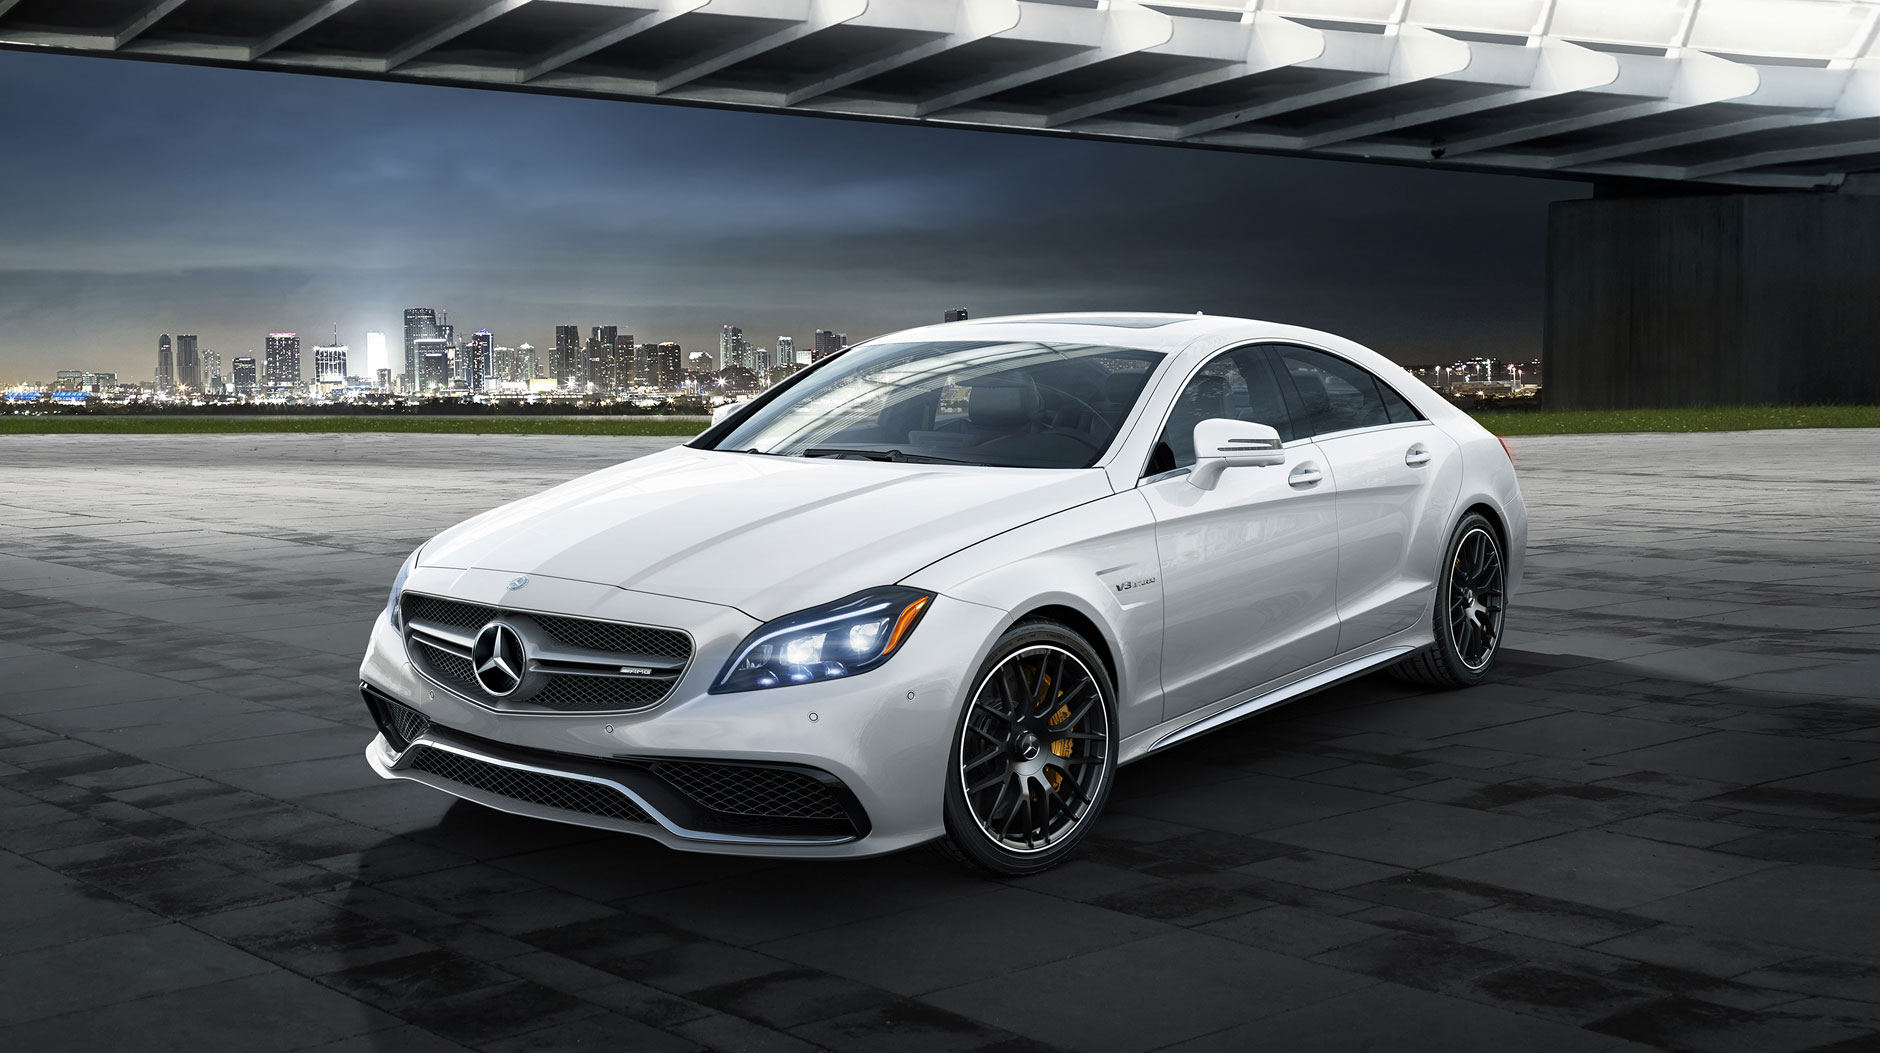 New Mercedes Benz AMG CLS 63 Lease Incentives & Prices LA